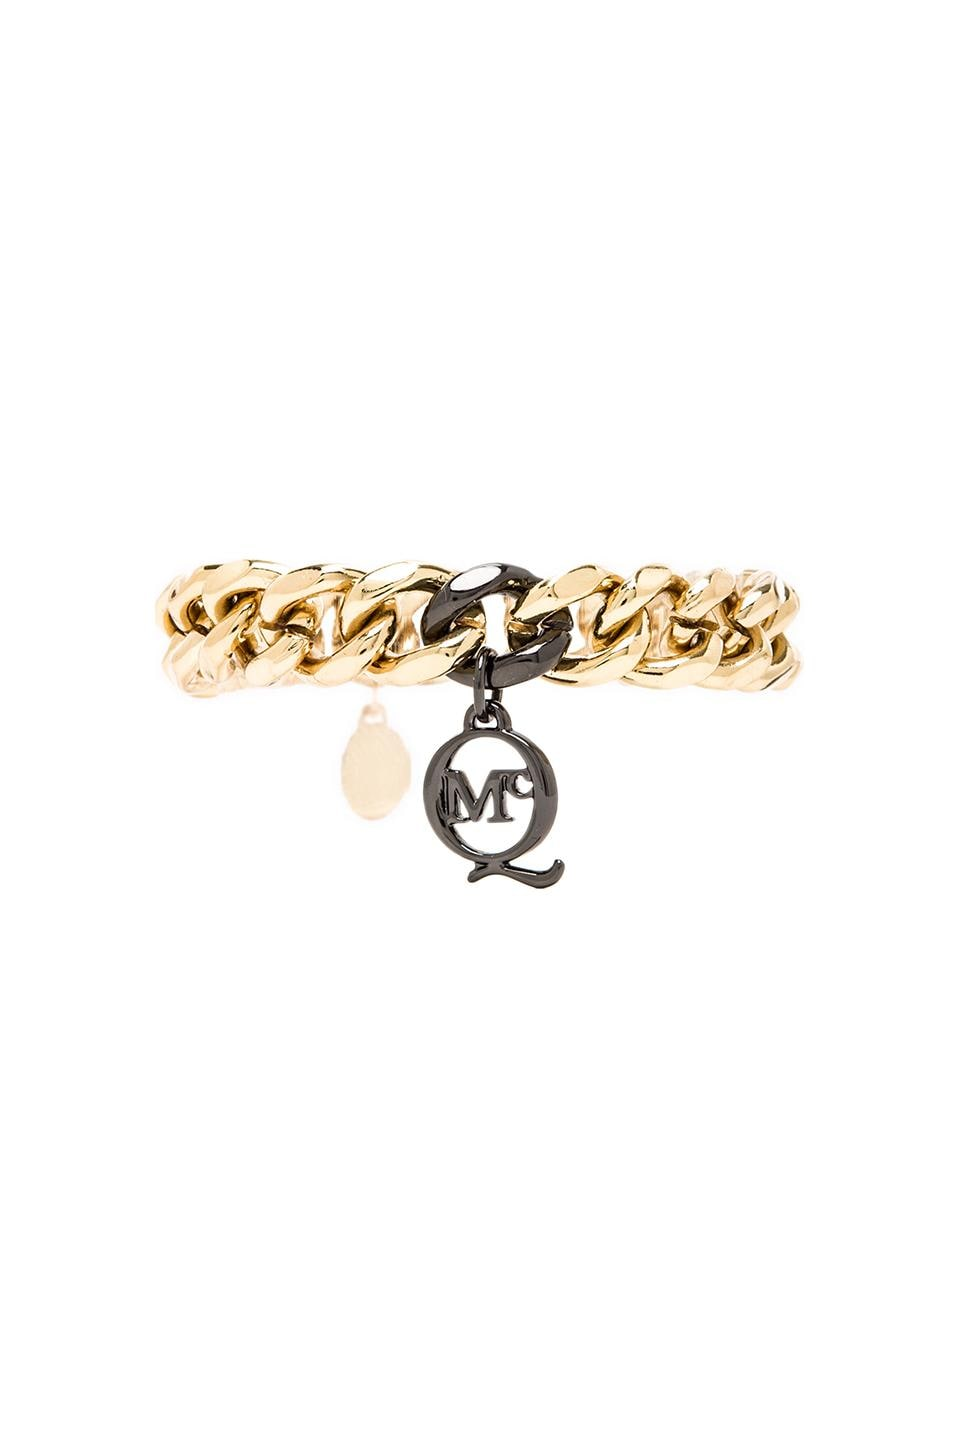 McQ Alexander McQueen Chunky Chain ID Bracelet in Light Shiny Gold